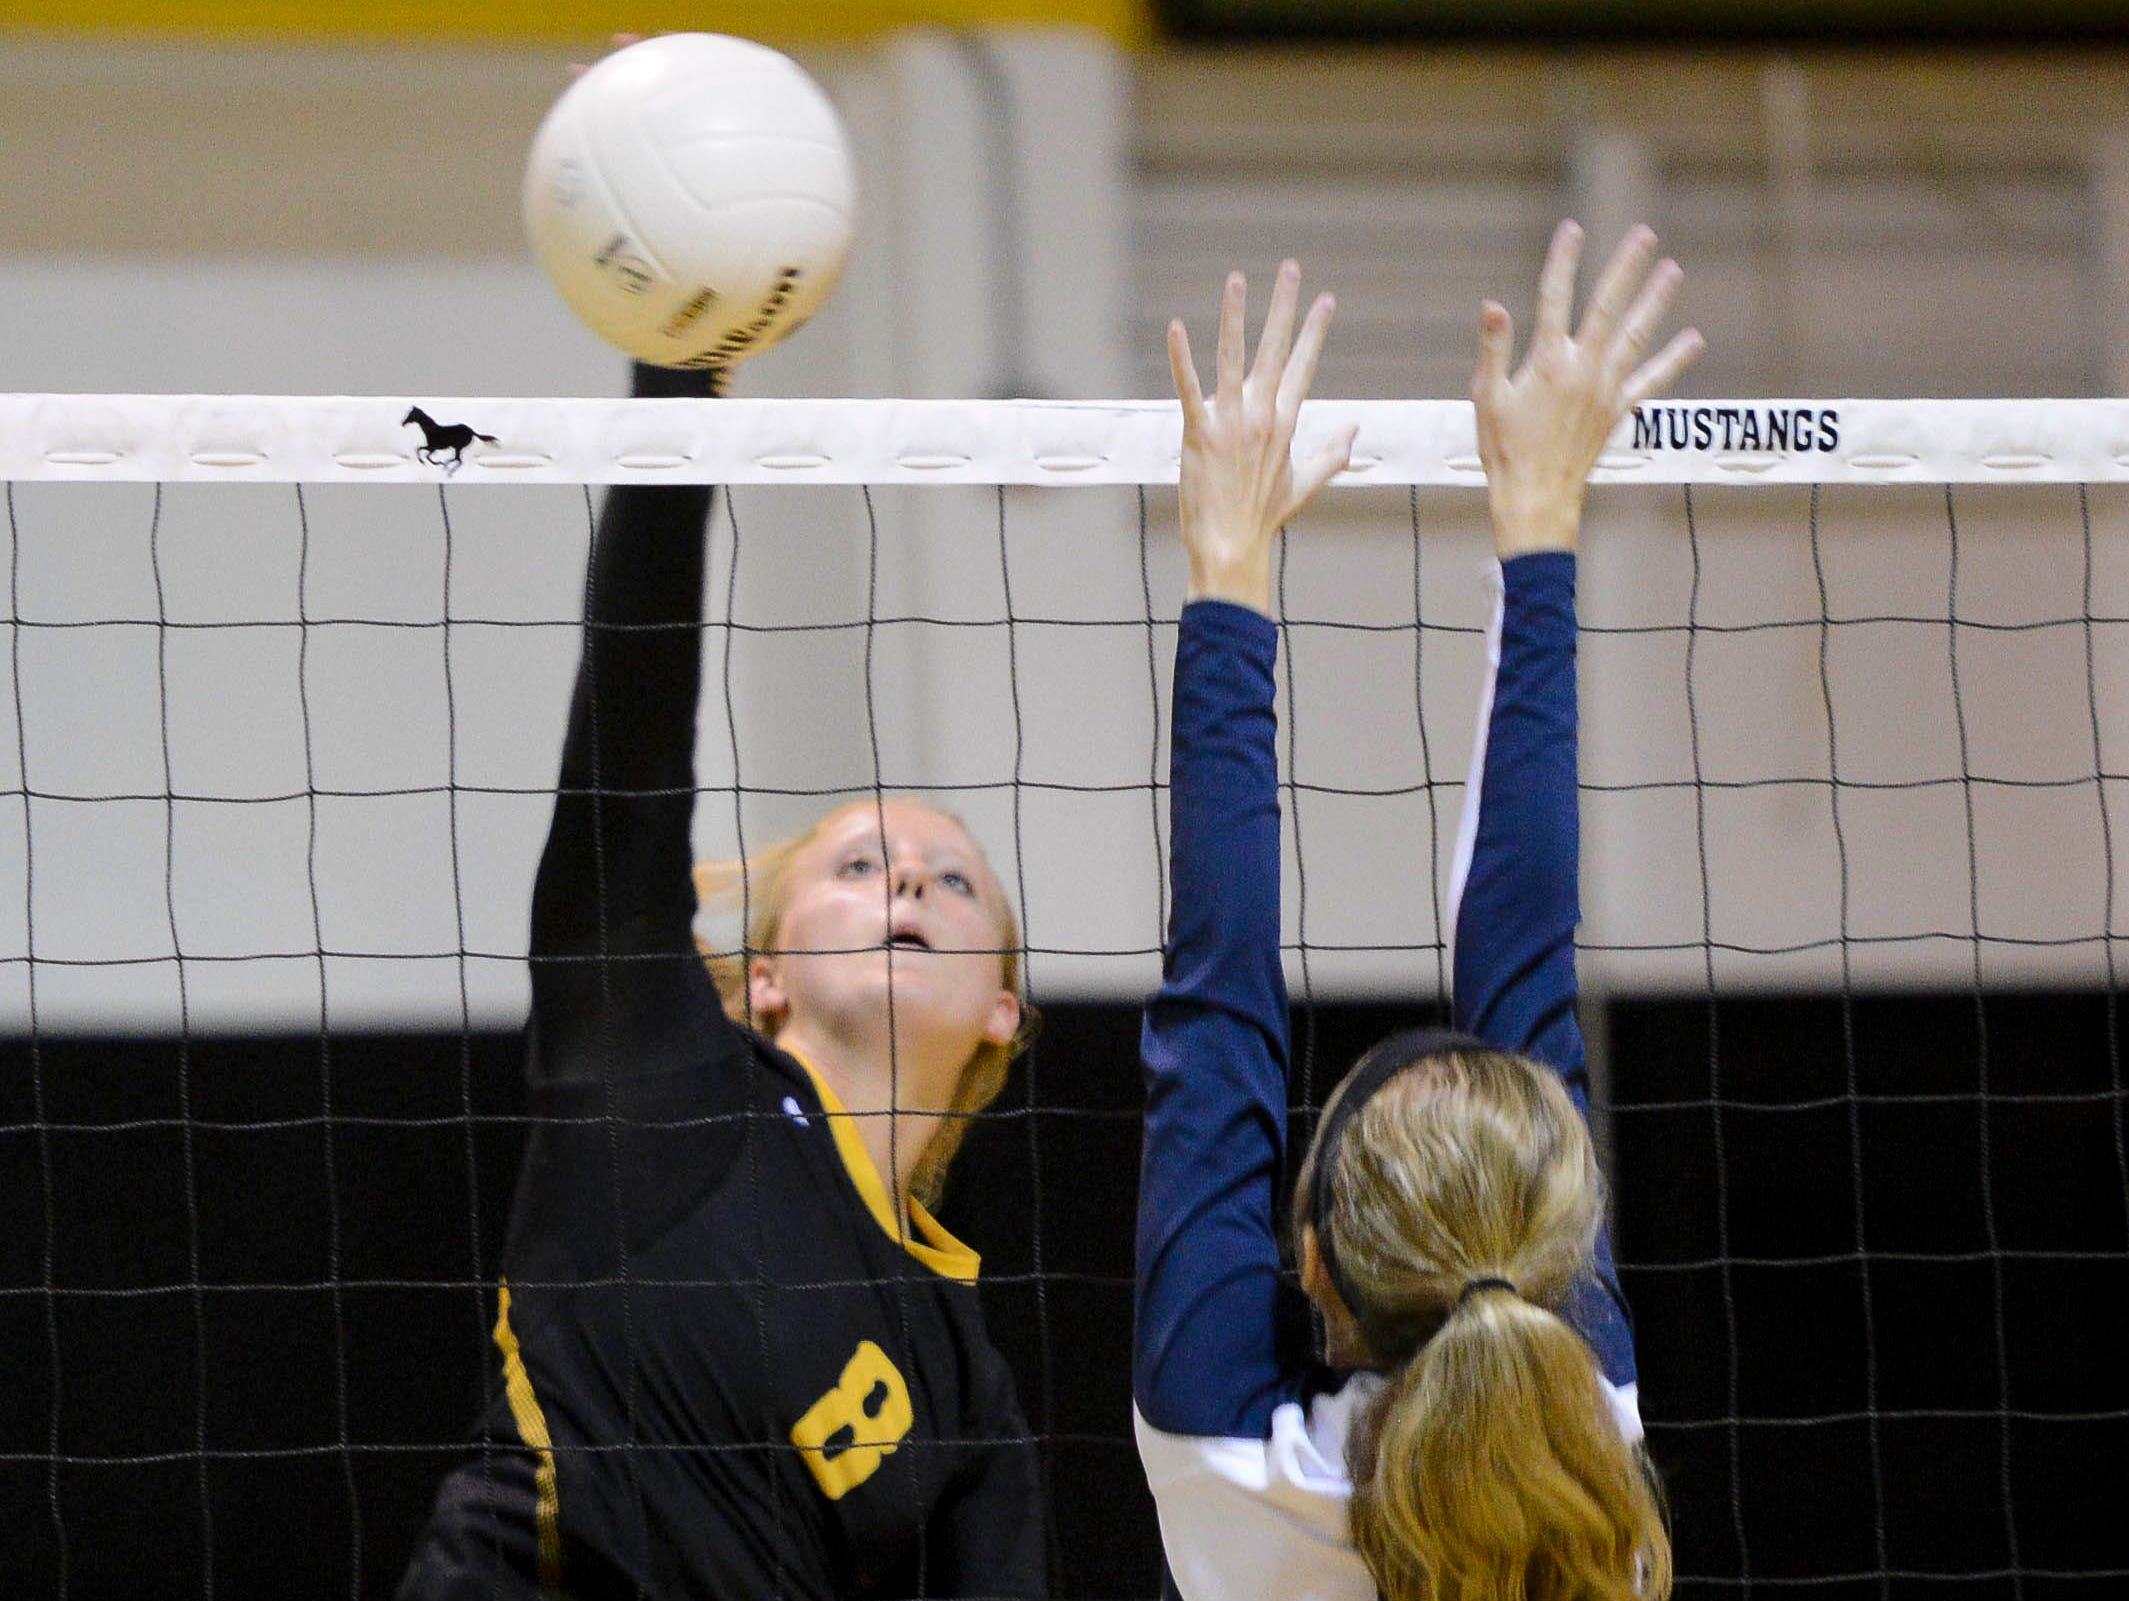 Alyssa Zwolensky of Merritt Island spikes the ball during Tuesday's match against Cocoa Beach. Zwolensky had nine kills in the match.